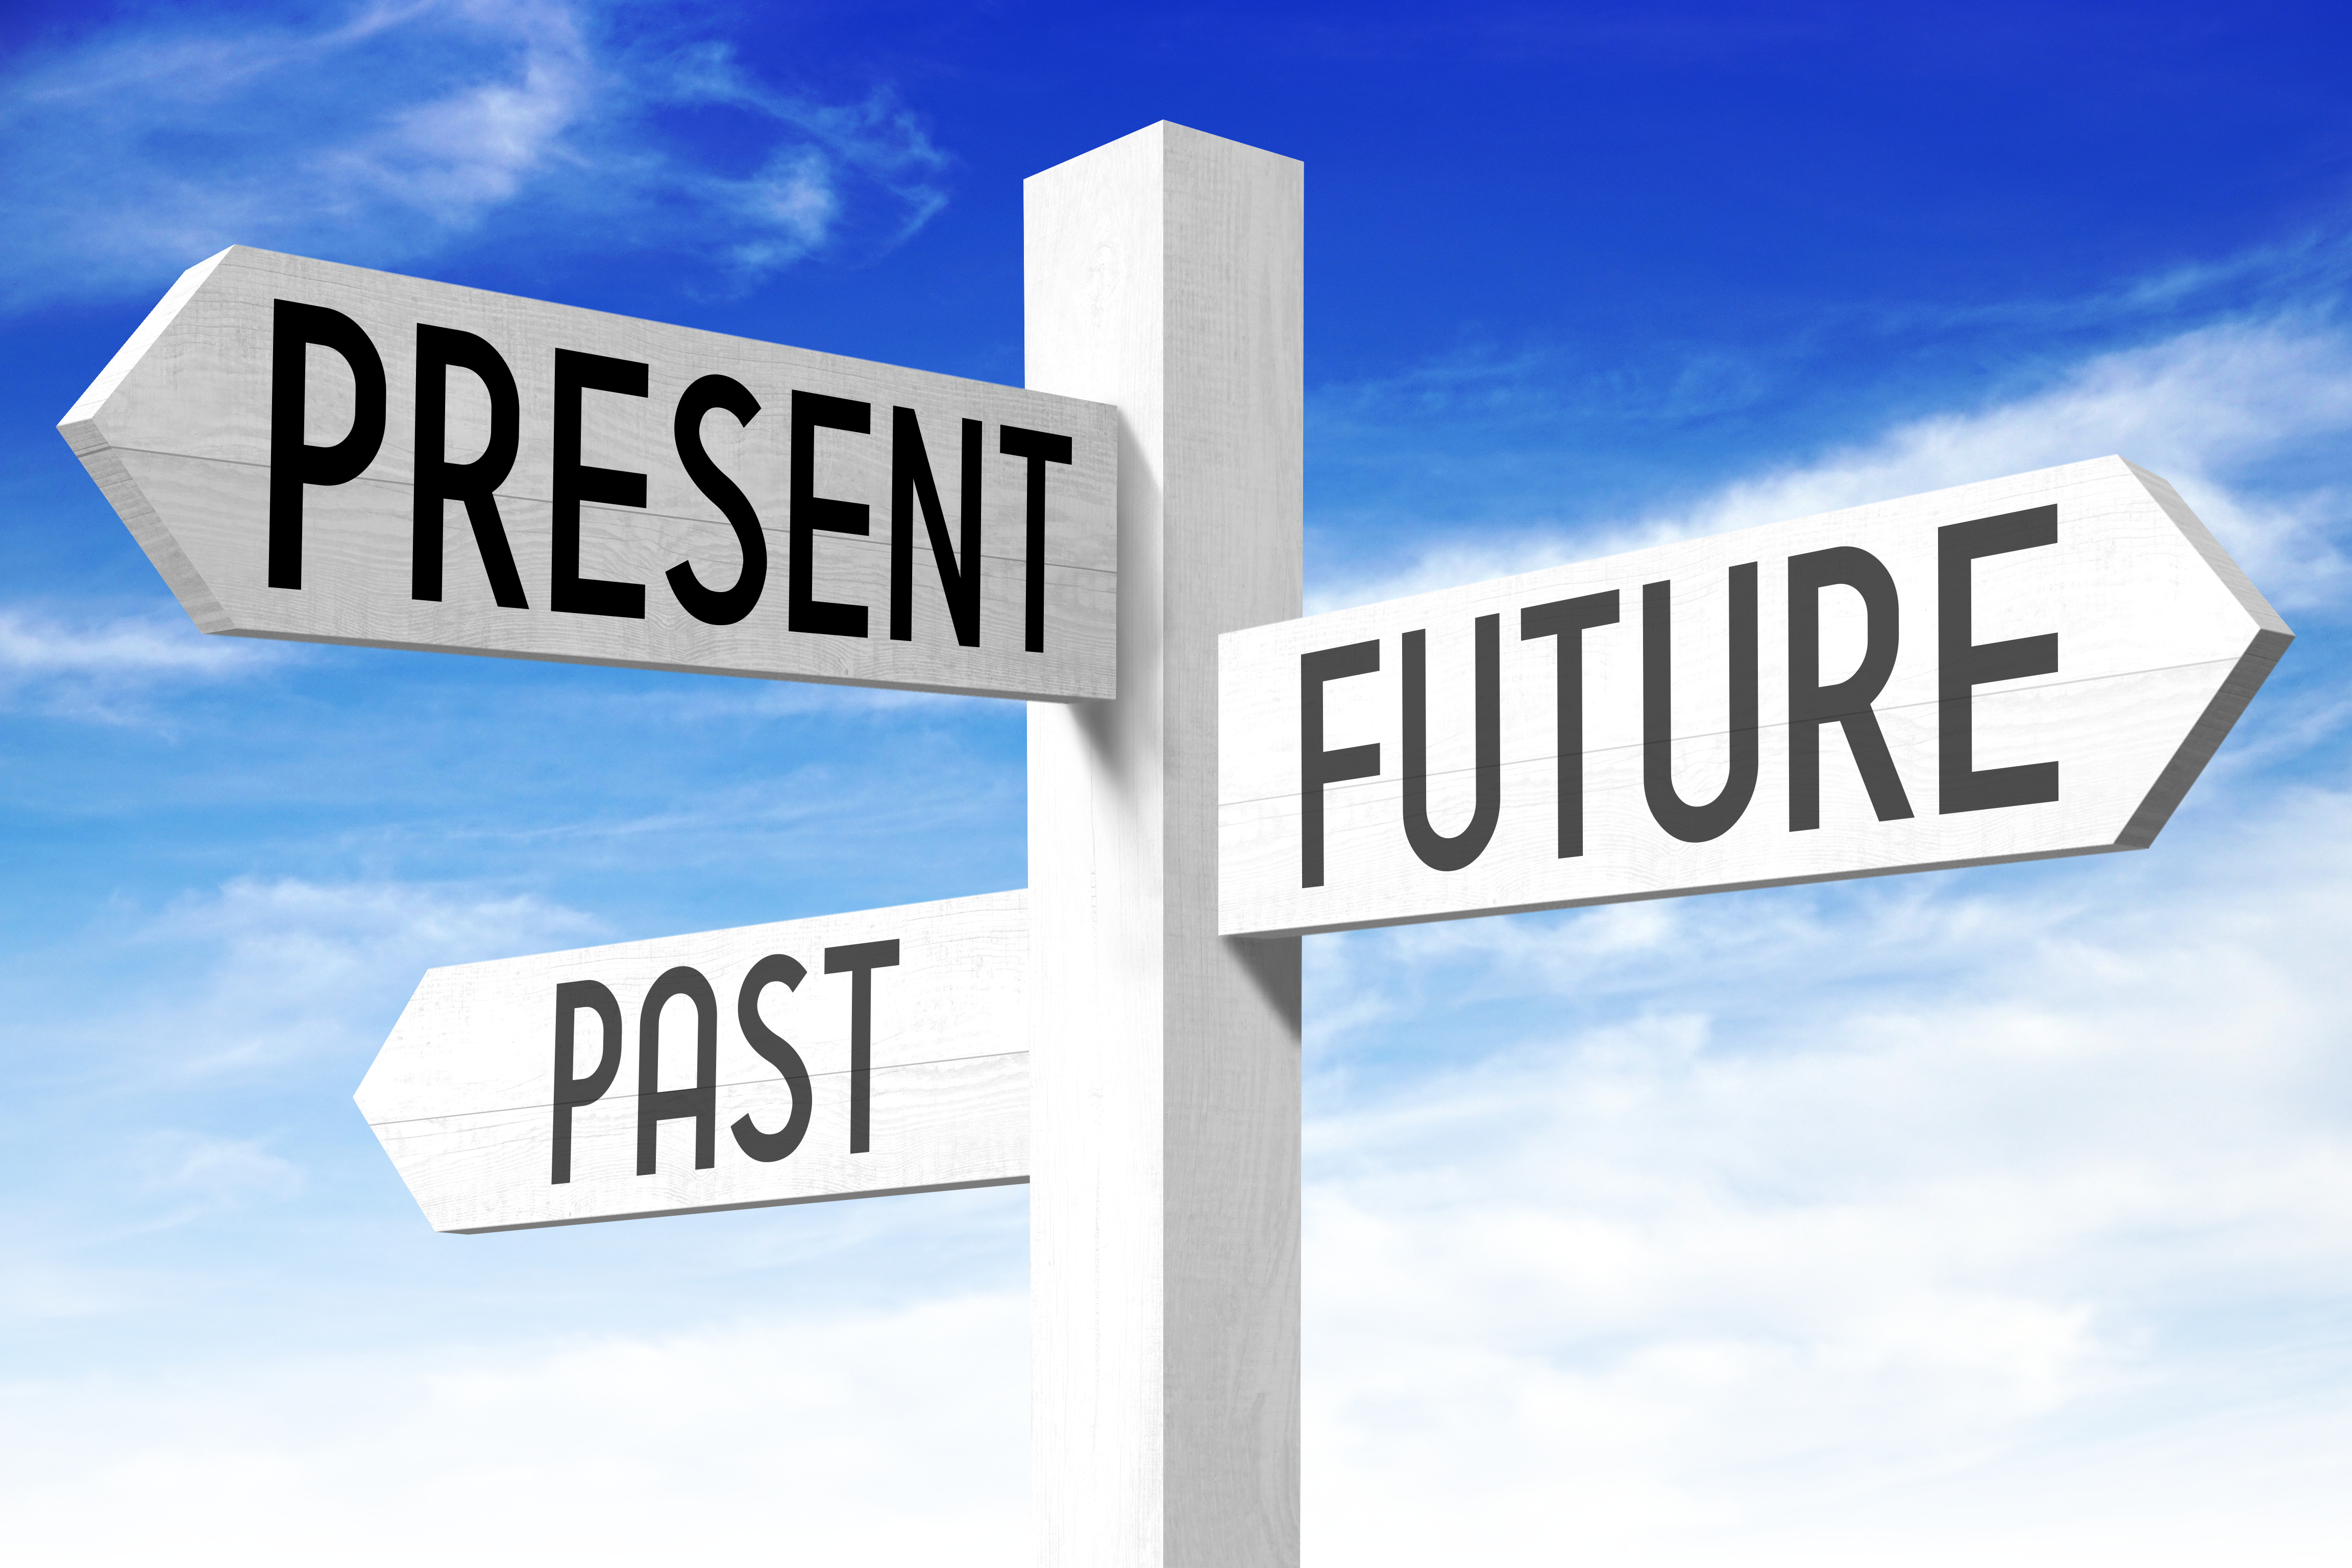 past or present